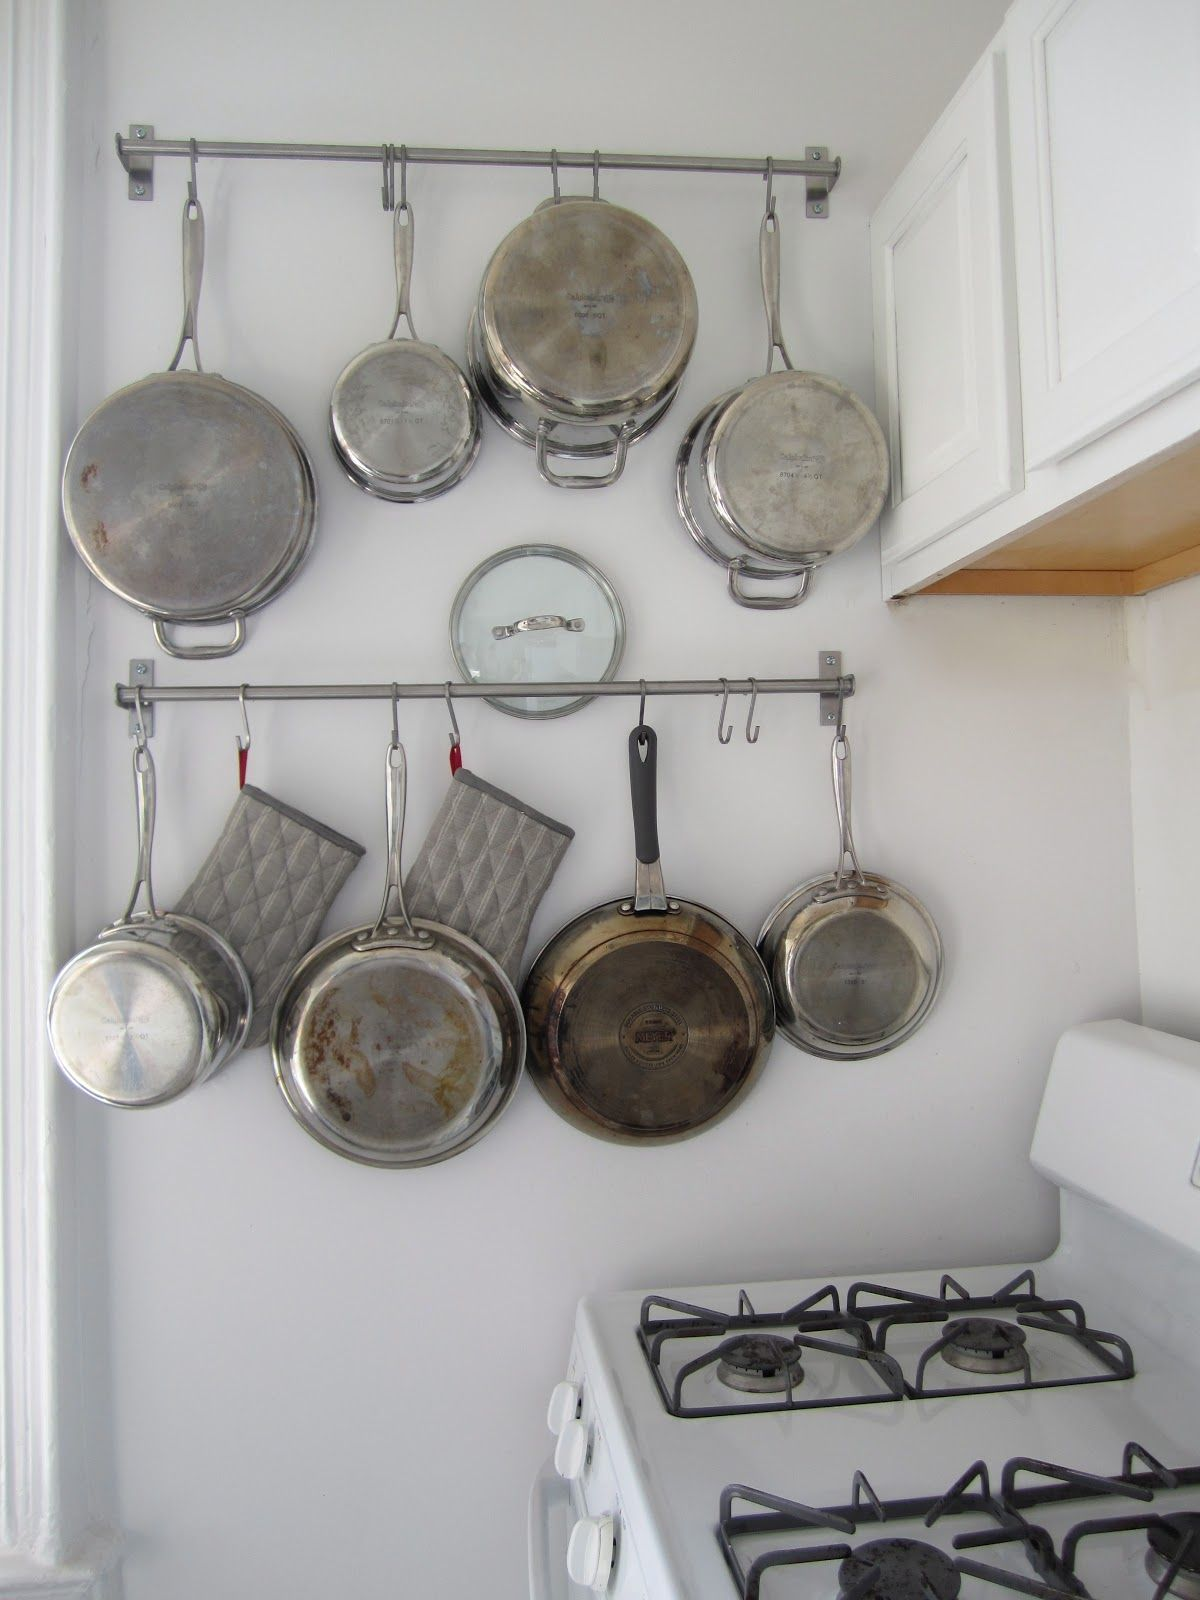 ikea pan pots kitchen the wells and plus pans with cheerful ga startling to home diy organ lid for her together how organize rack organizer lids pot piquant